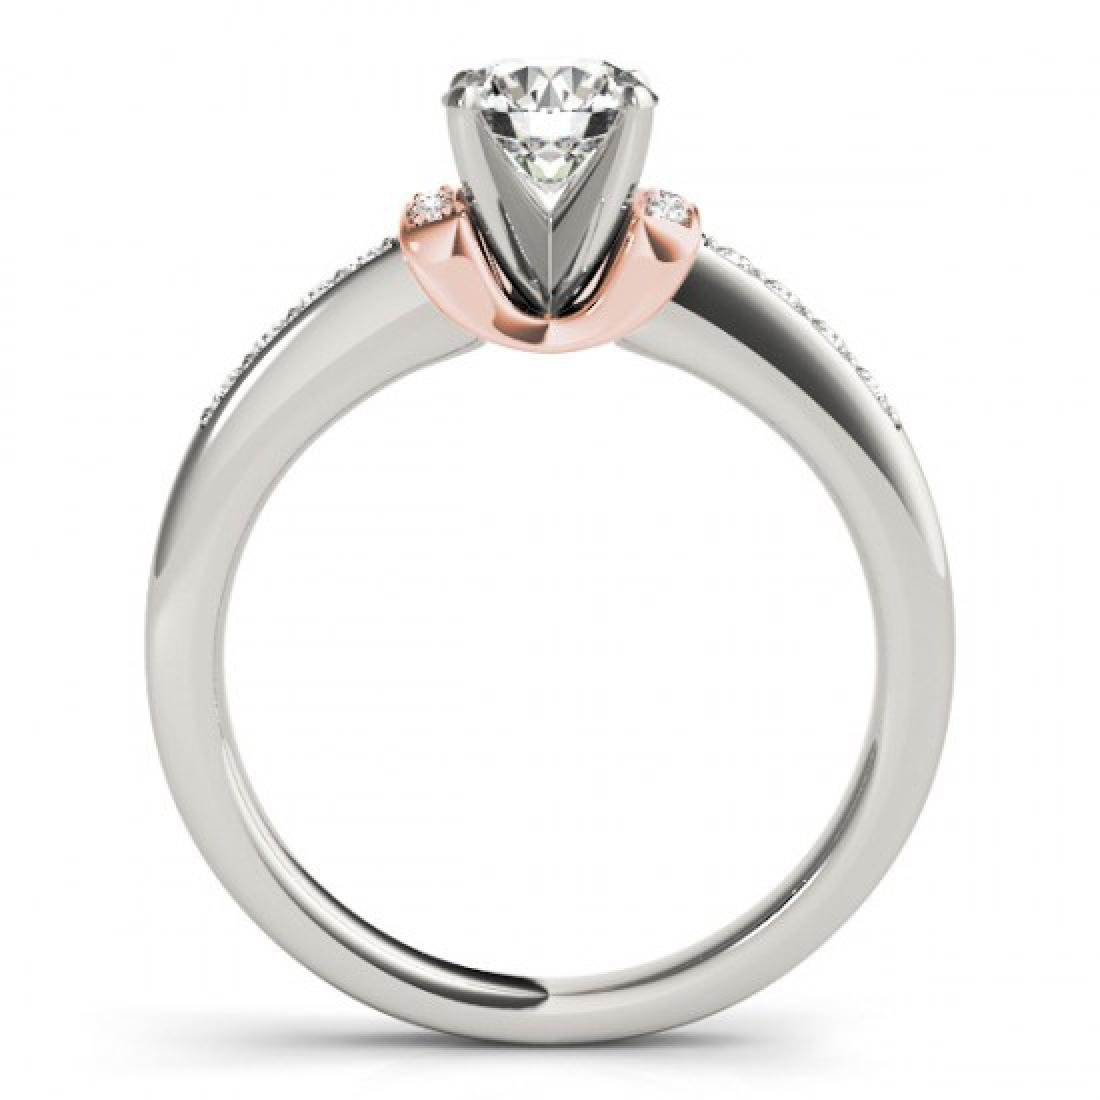 1.11 CTW Certified VS/SI Diamond Solitaire Ring 14K - 2